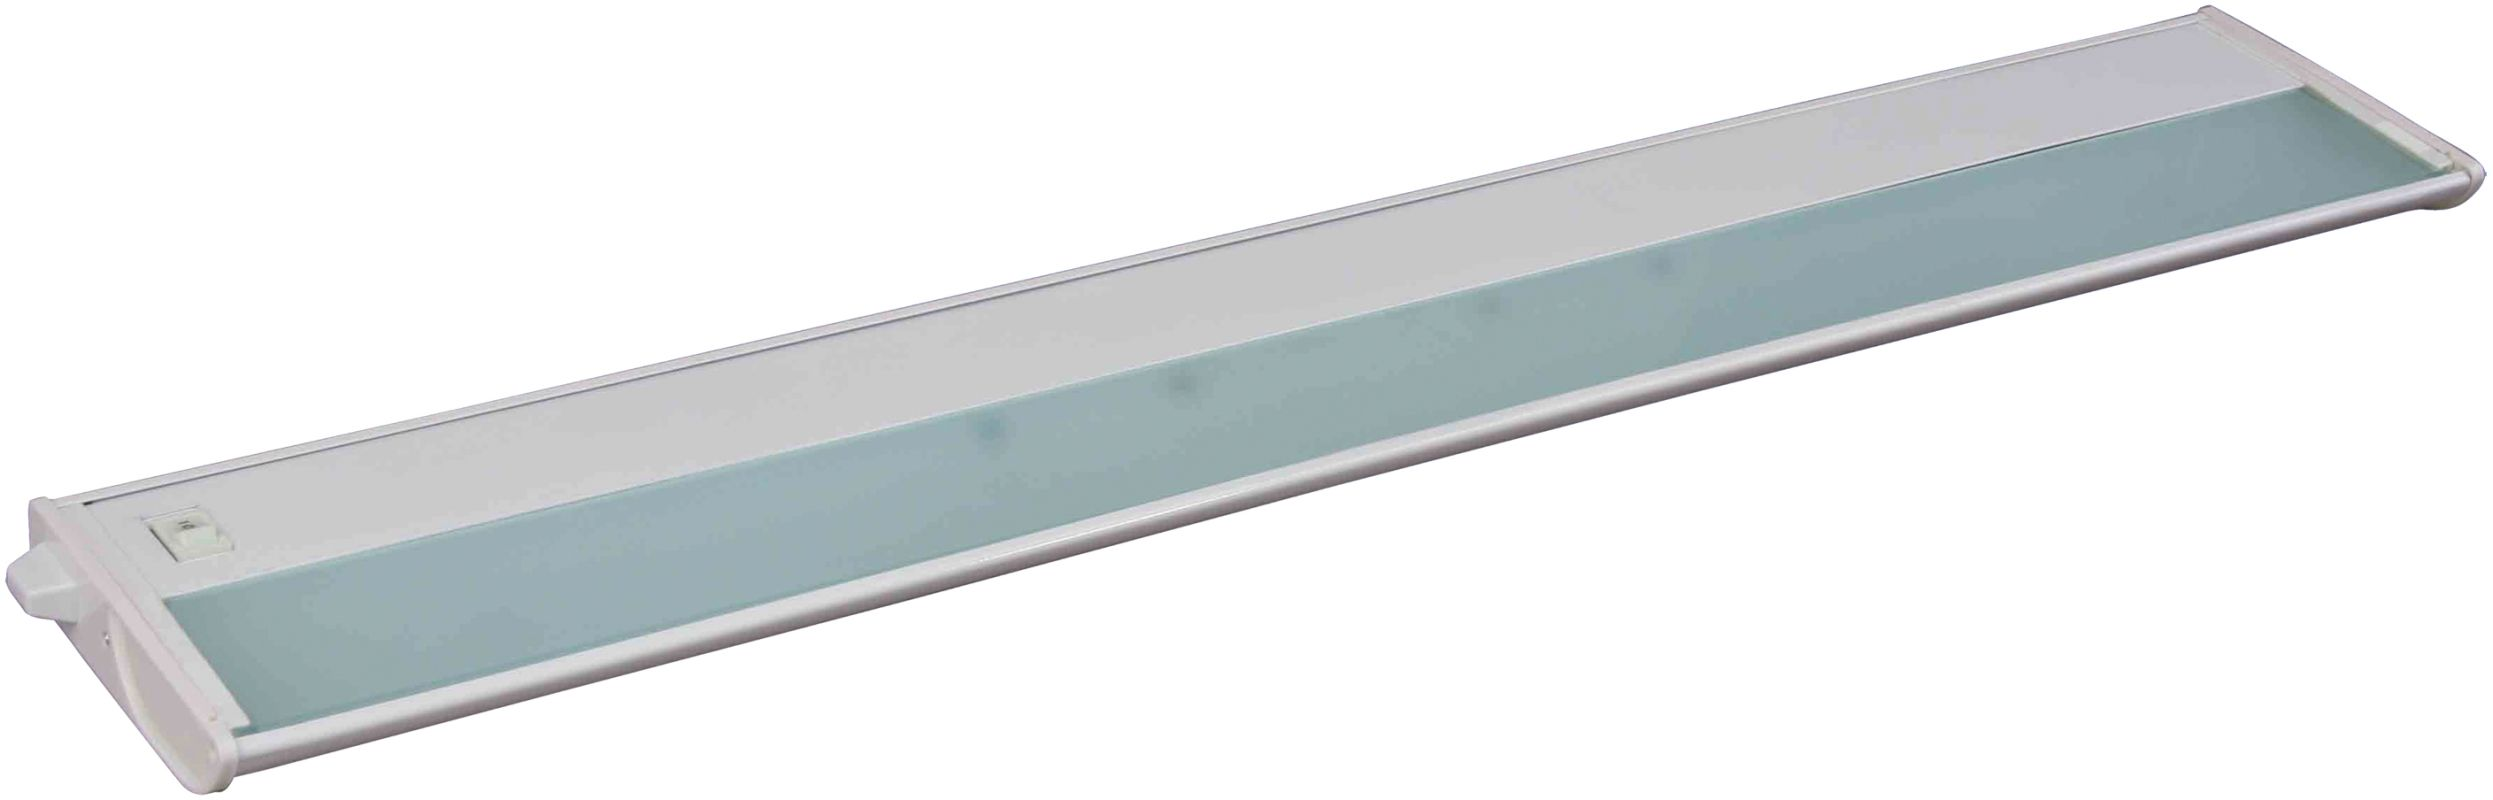 "Maxim 87863 30"" 4 Light Xenon Under Cabinet Add-On Light from the"